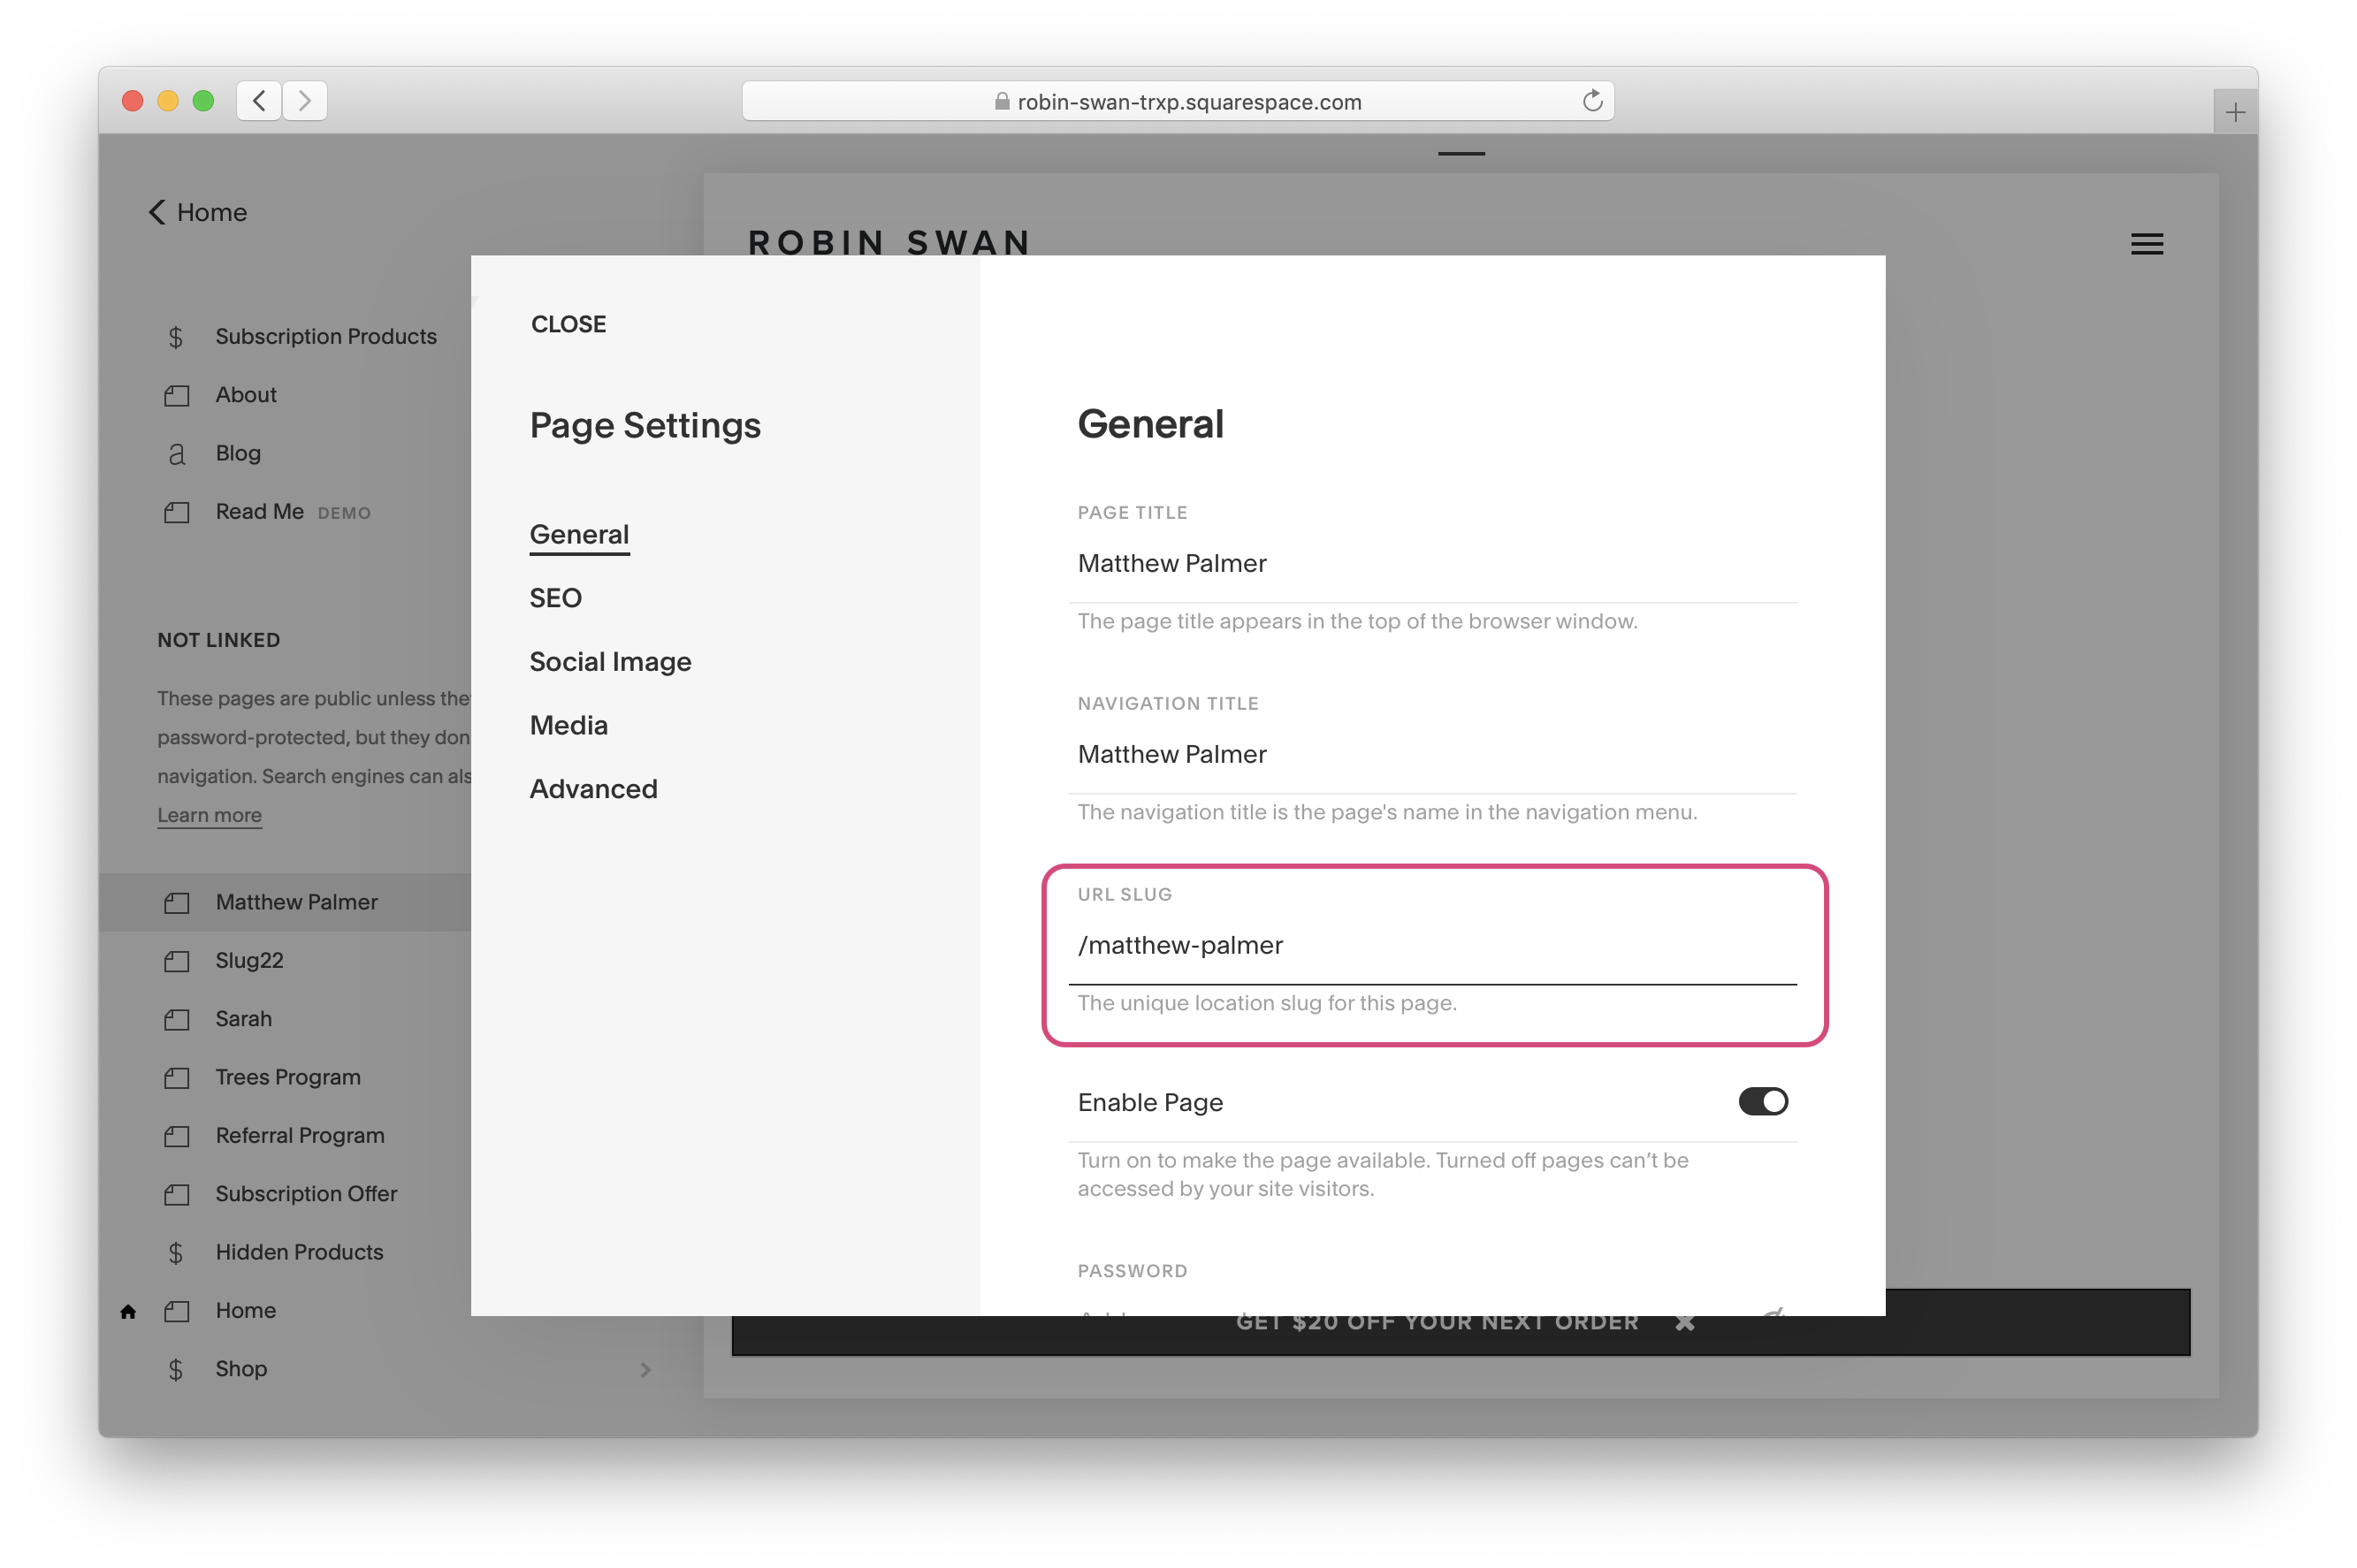 Settings page in Squarespace